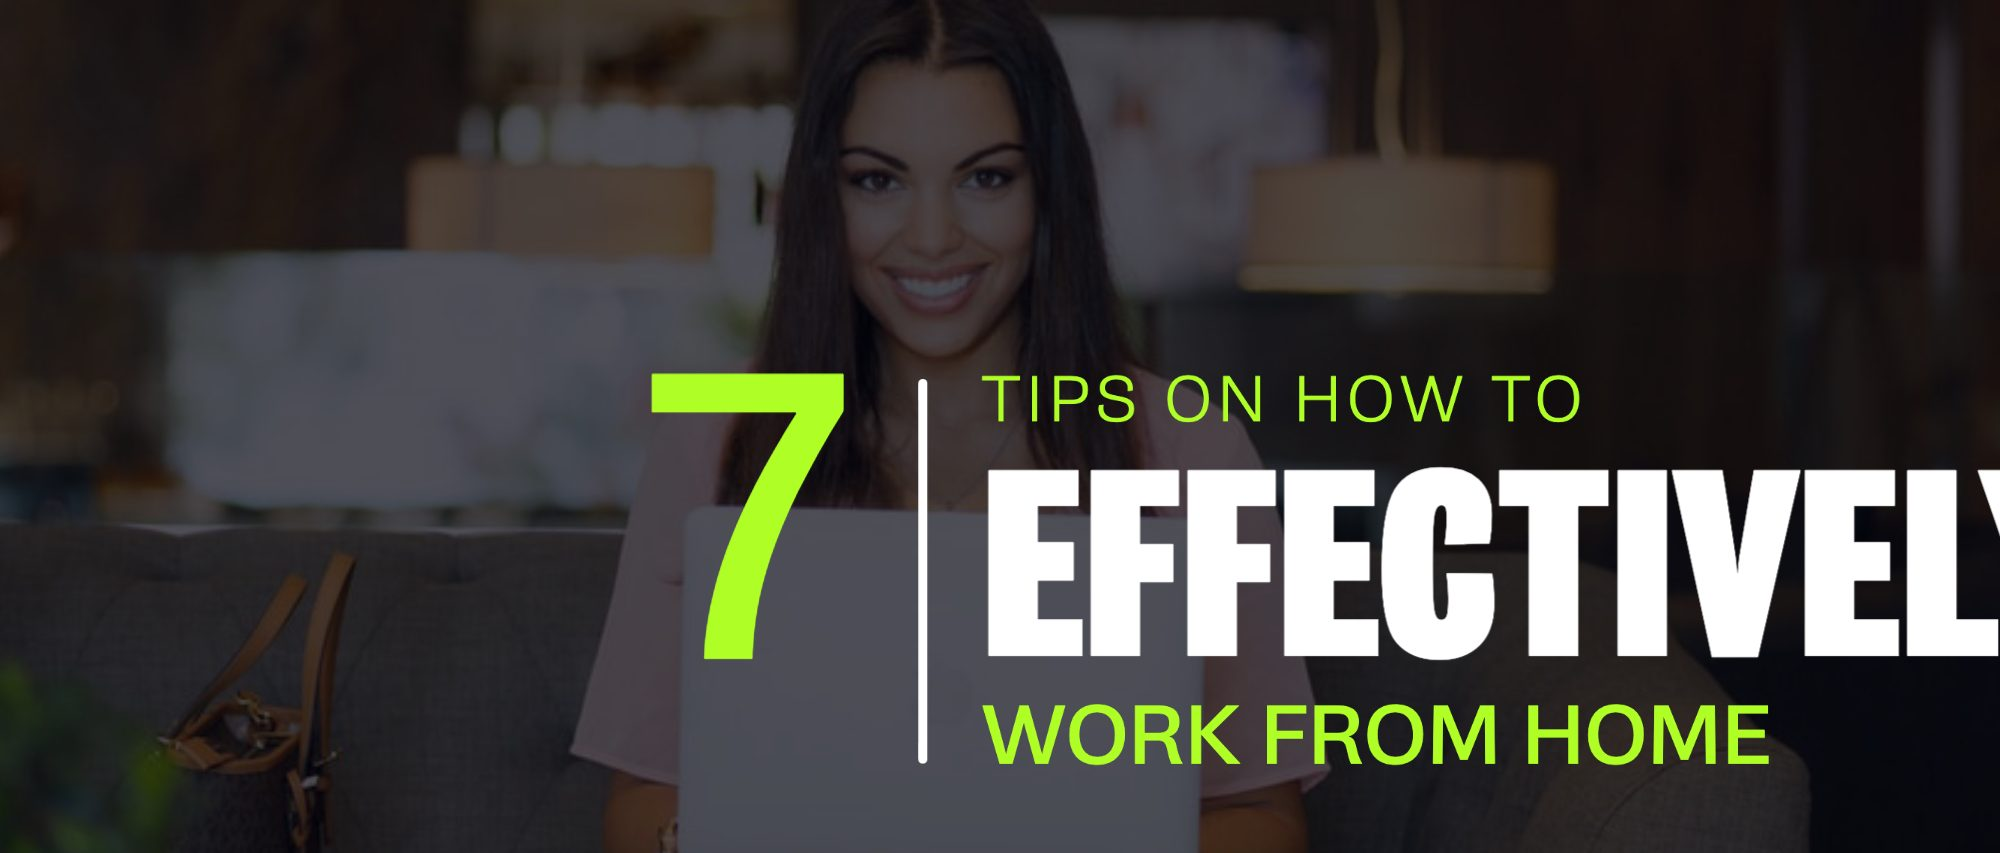 7 tips to effectively work from home bear bull co consulting more sales less turnover